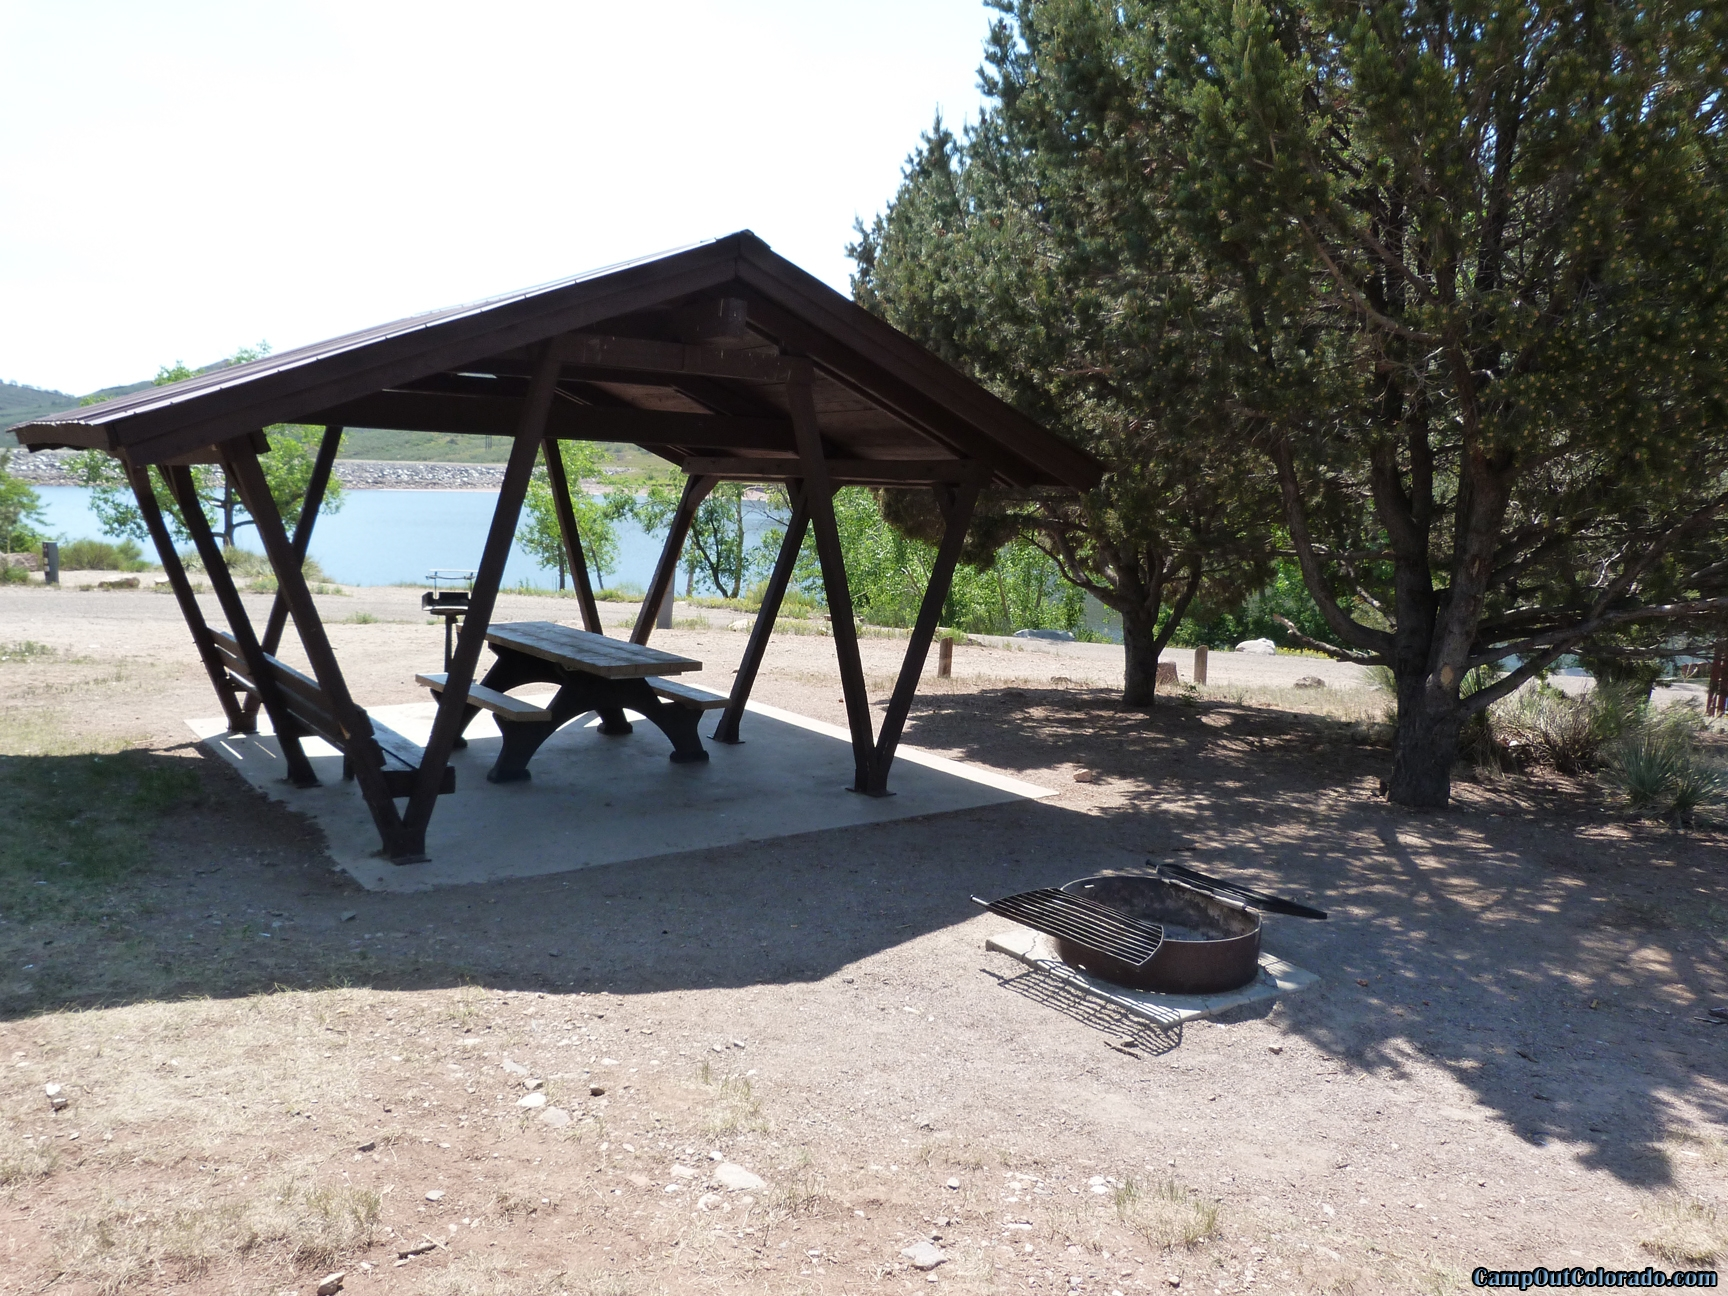 camp-out-colorado-flatirons-reservoir-covered-campsite